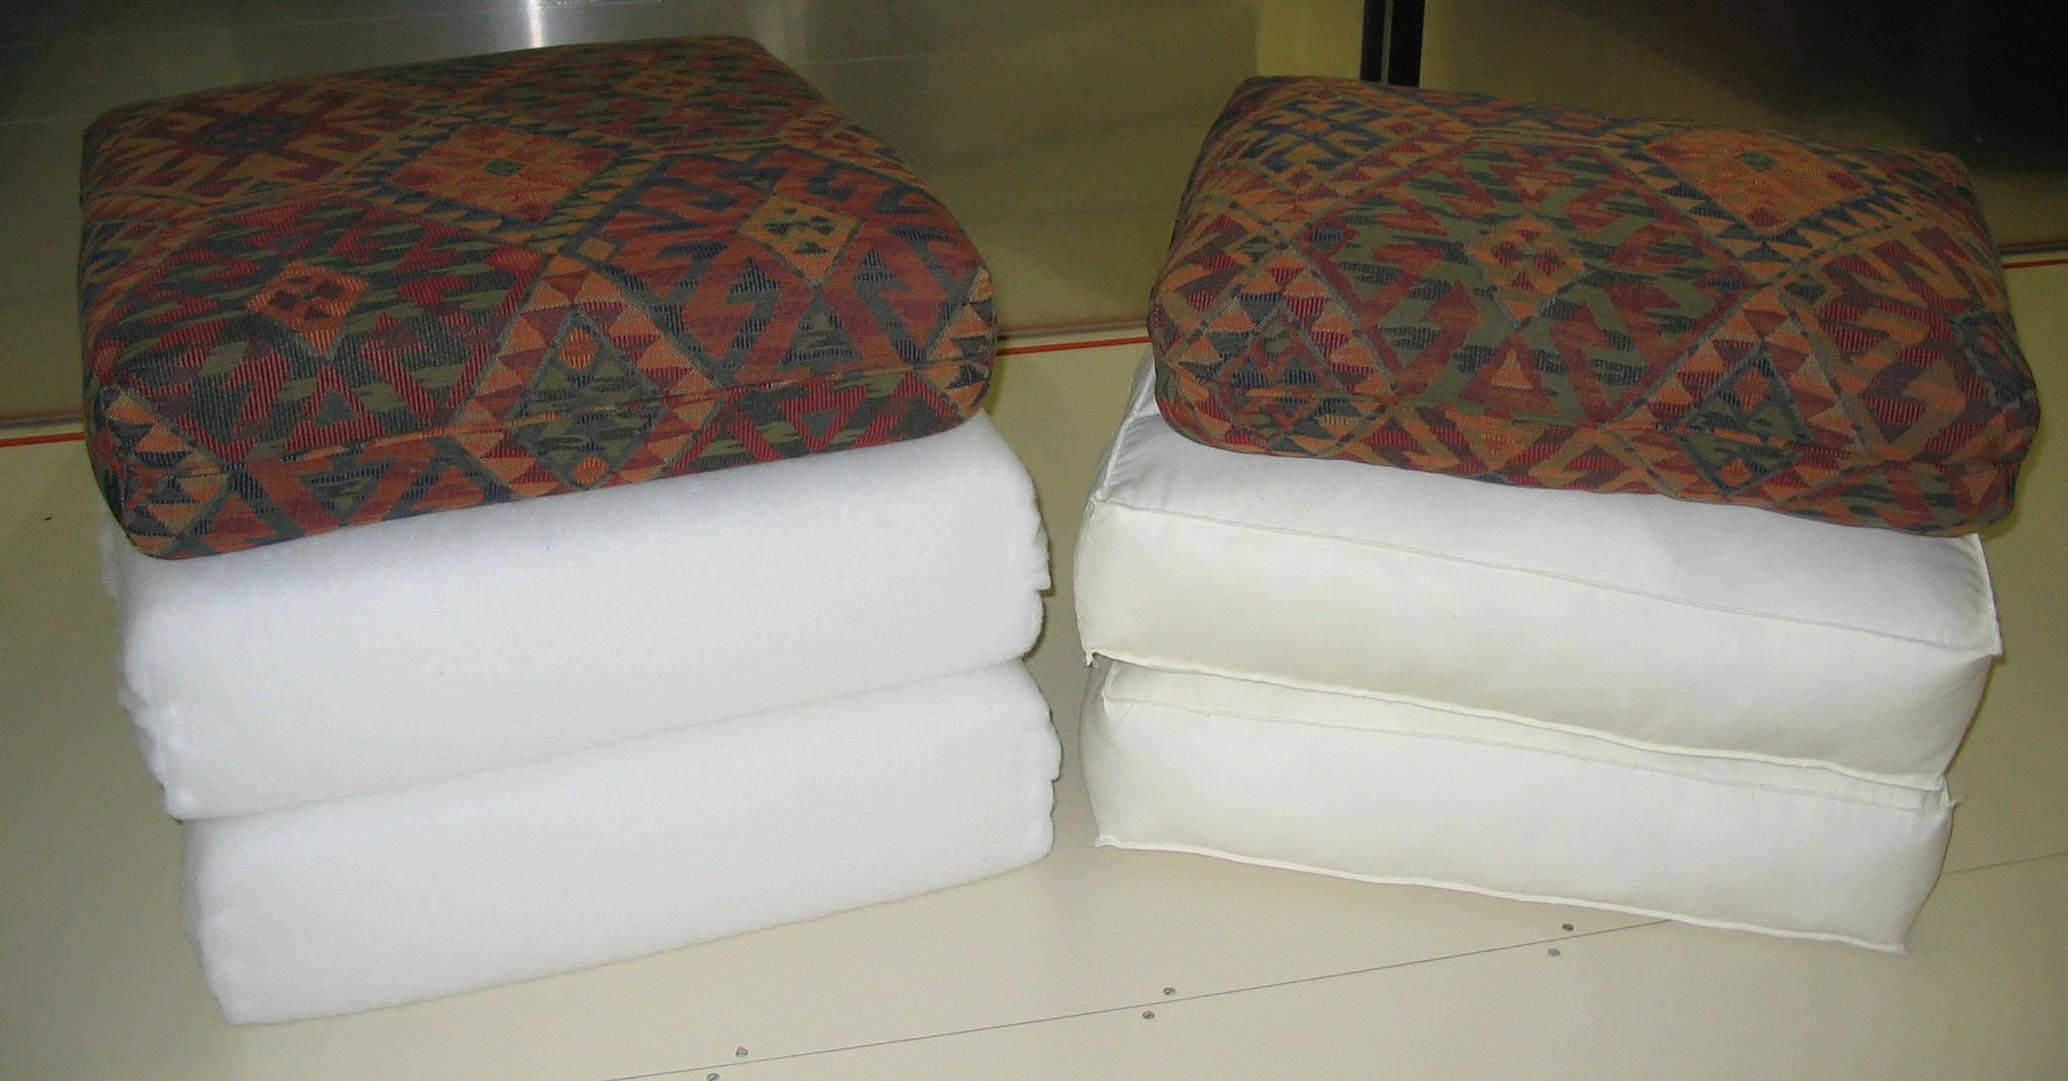 Replacement Couch Cushion Covers Cushions On Sofa Replacement